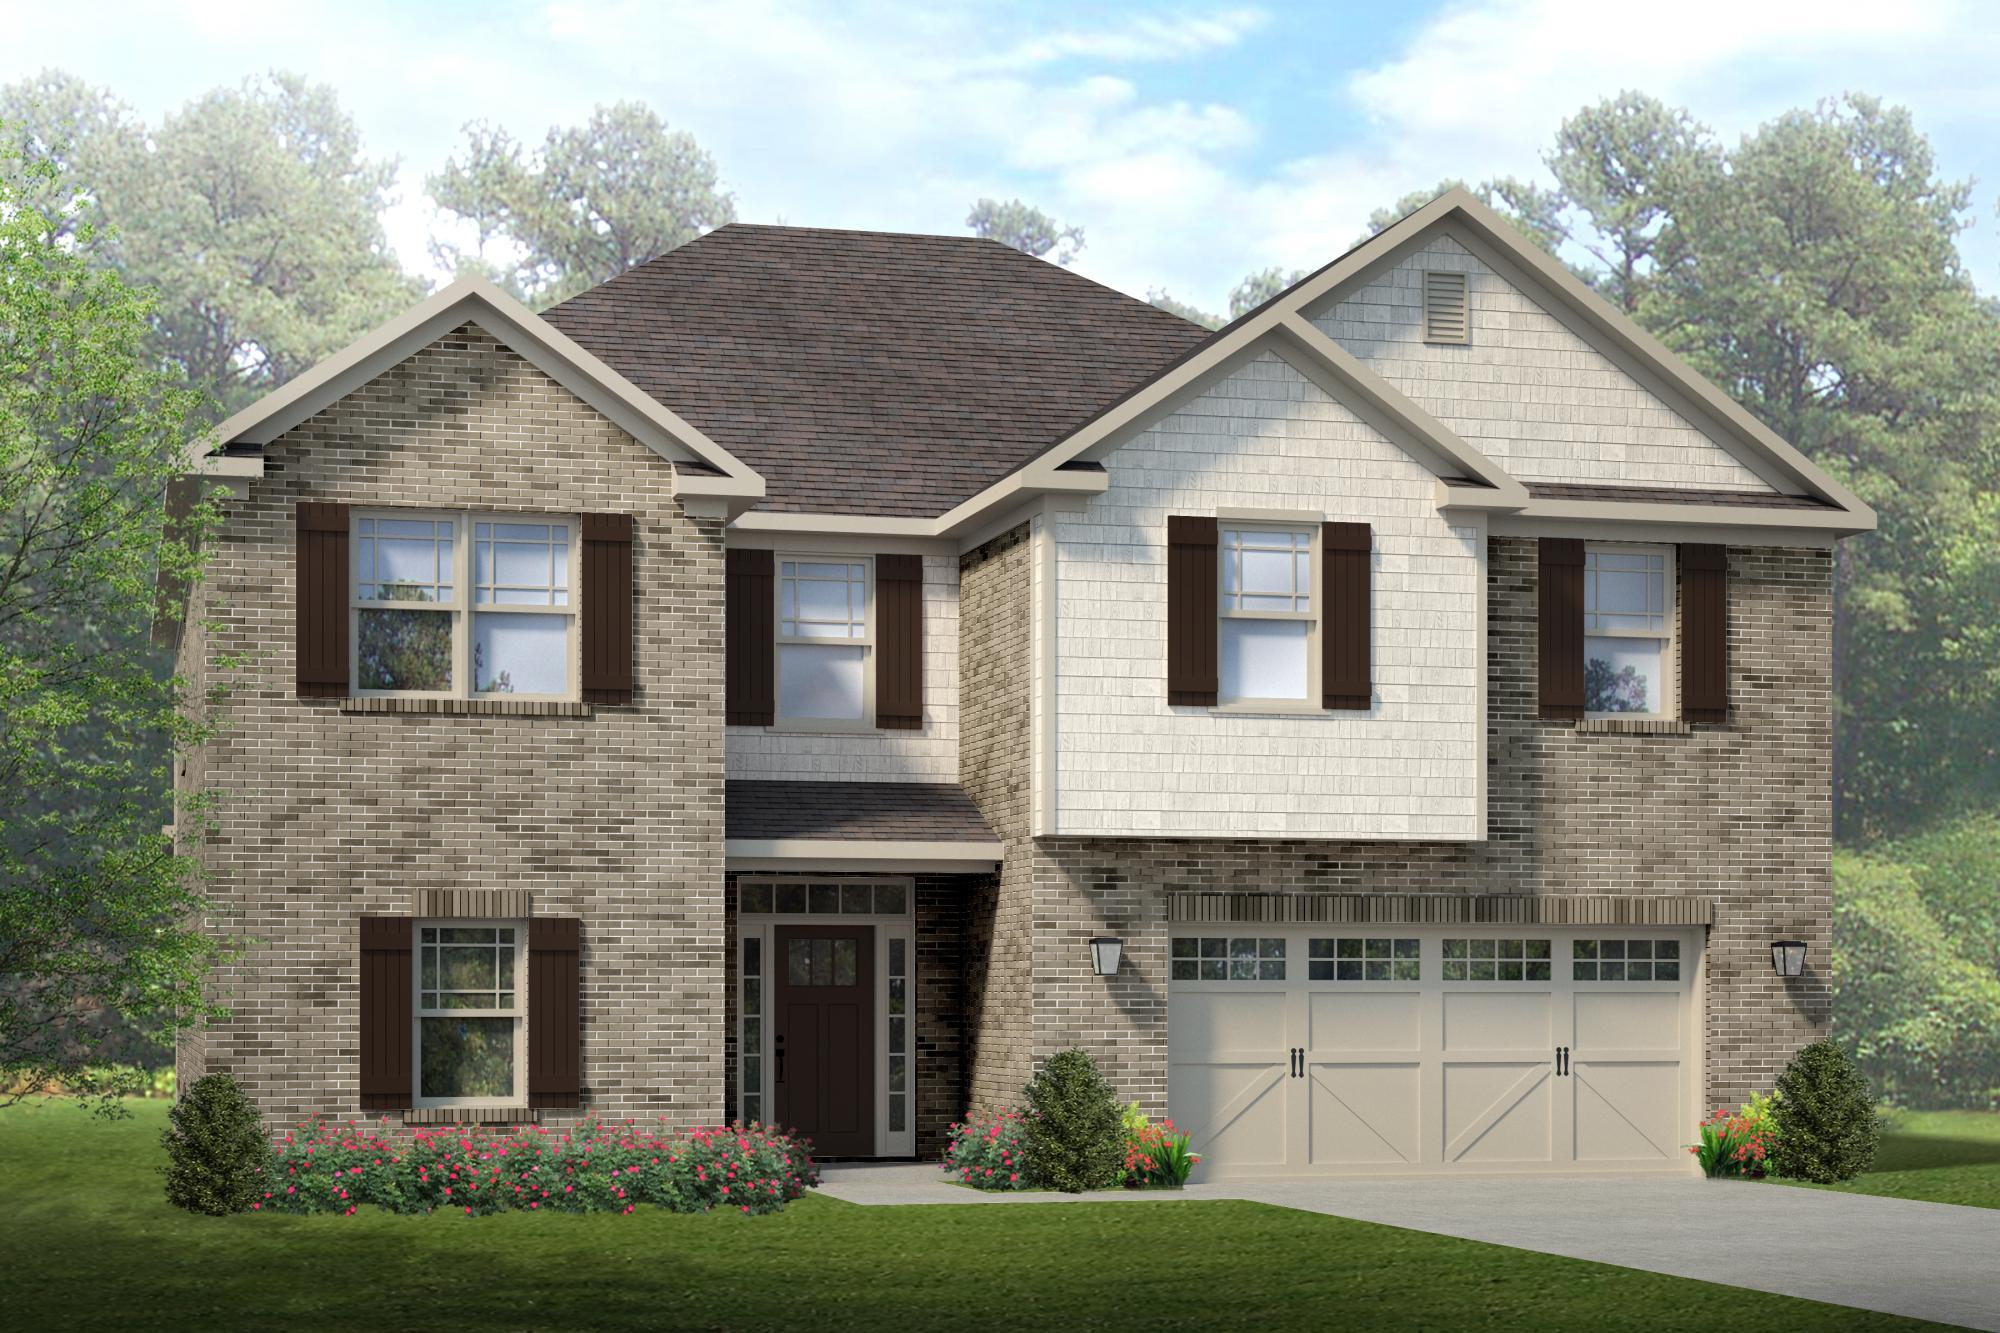 Single Family for Sale at Colonial Pointe - The Washington 230 Balota St Meridianville, Alabama 35759 United States